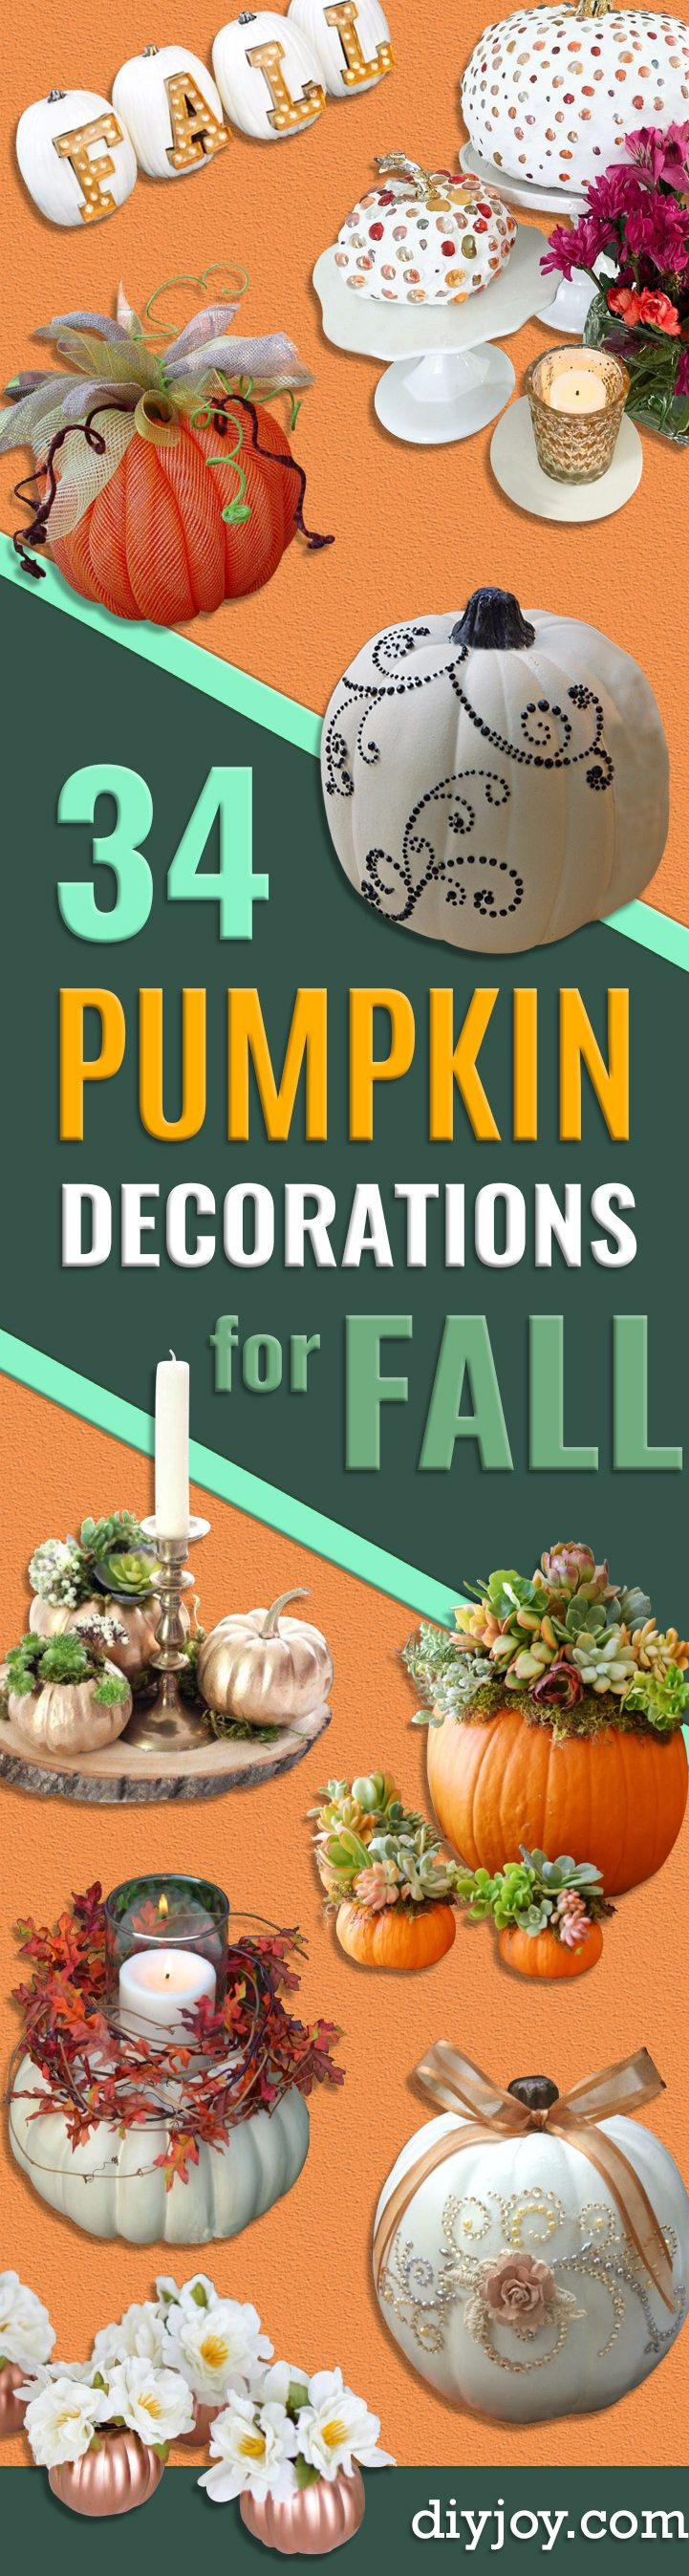 34 Pumpkin Decorations For Fall - Easy DIY Pumpkin Decor Ideas for Home, Yard, Outdoors - Cool Pumpkin Decorating Ideas for Adults and Kids Party, Creative Crafts With Paint, Glitter and No Carve Projects for Halloween